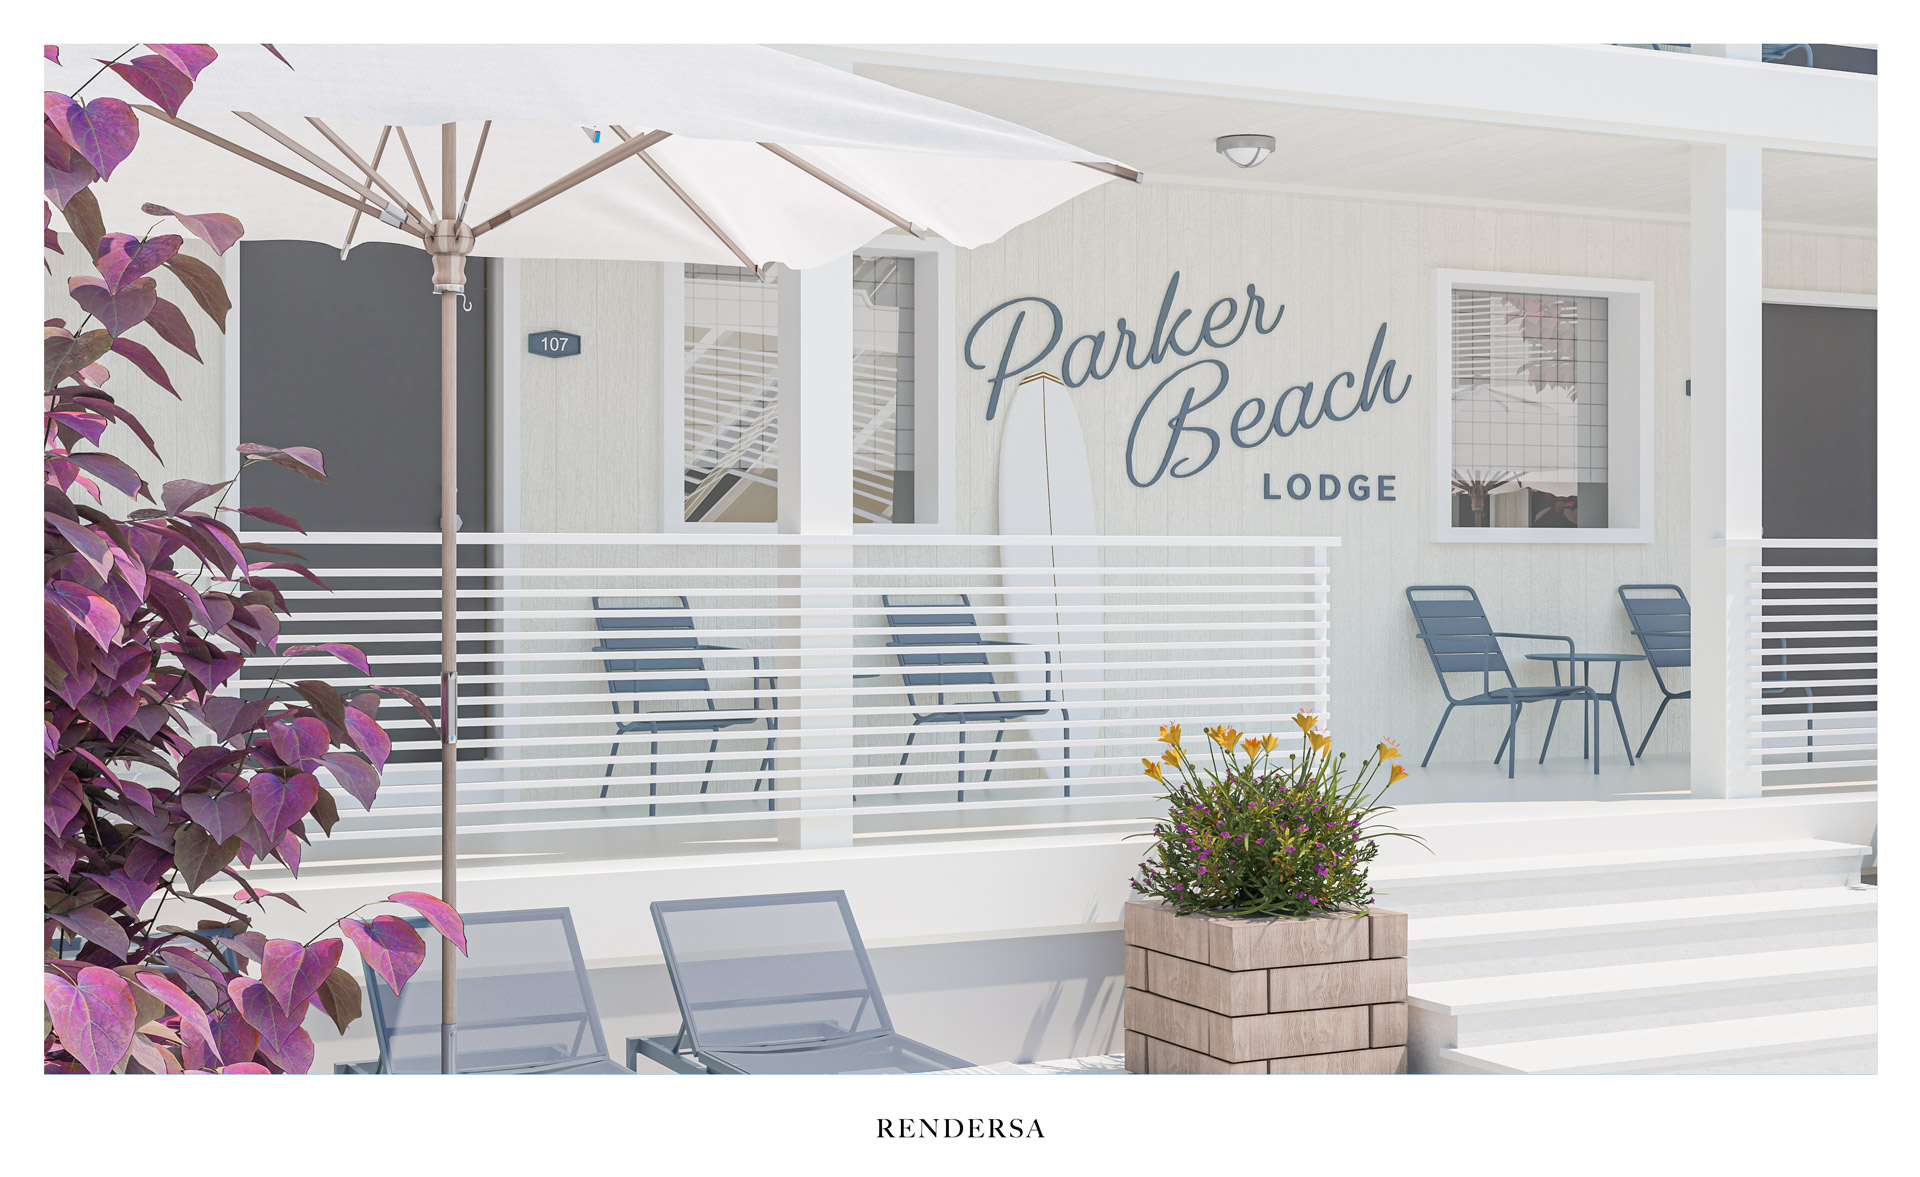 3D rendering hotel table and chairs outside the room Bluebird Parker Beach Lodge